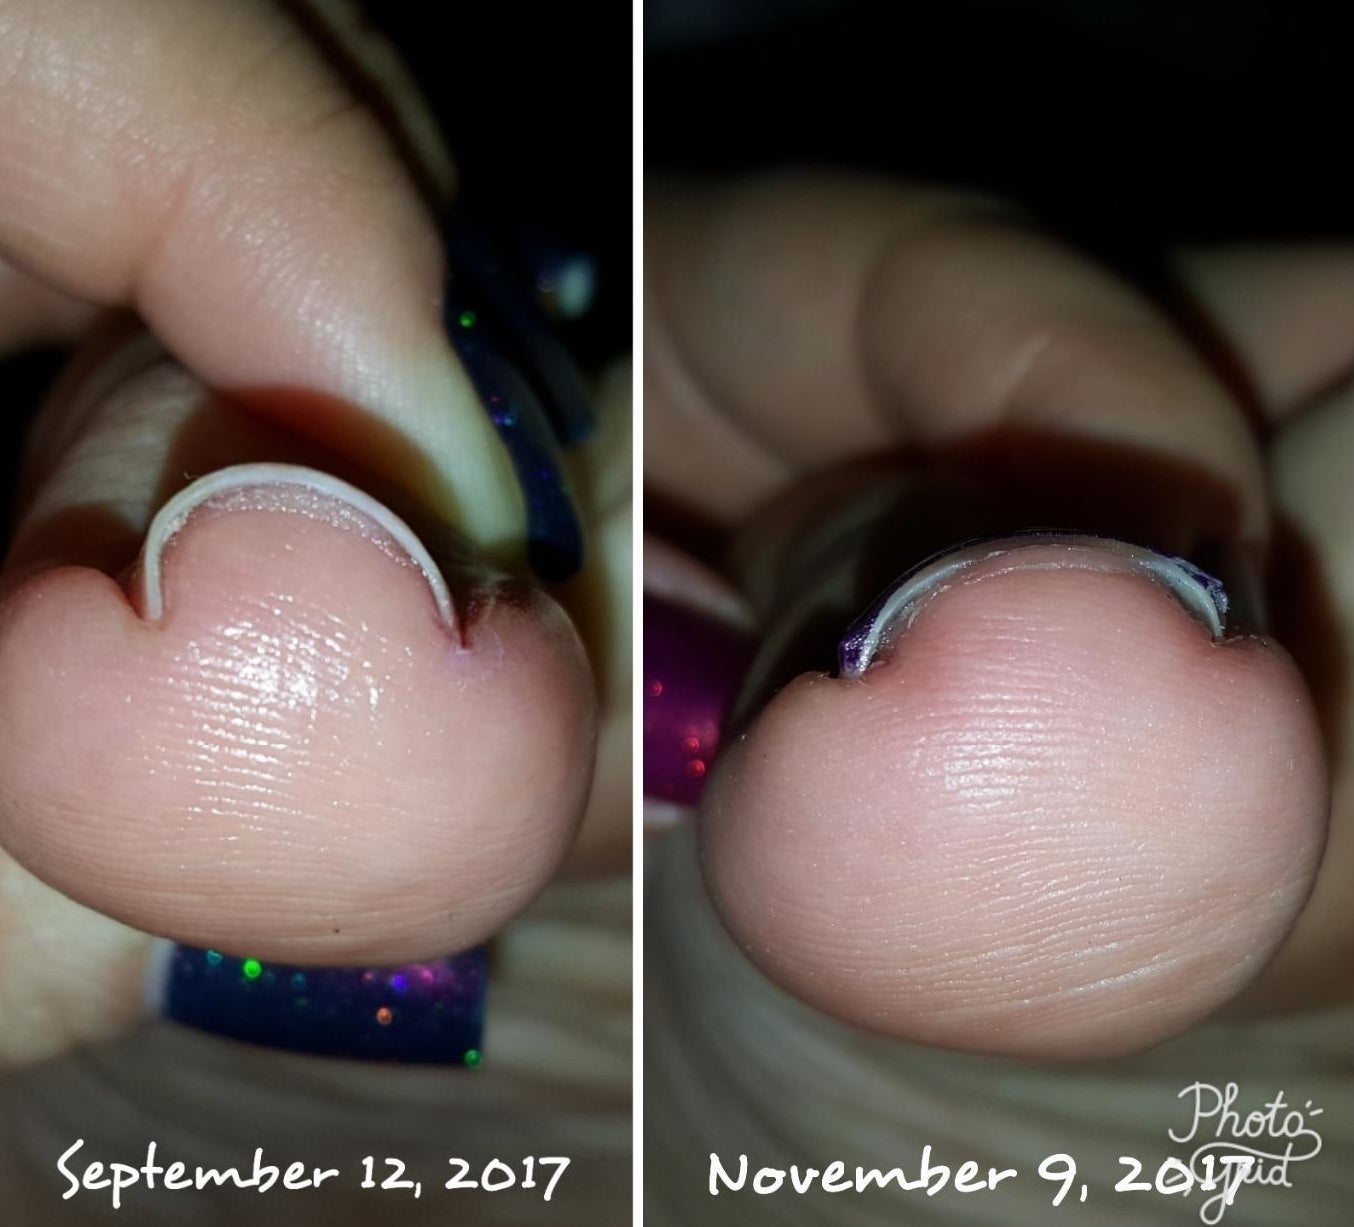 Reviewer images showing big toe before and after using the brace. The before image shows an ingrown nail, the after image shows the nail corrected